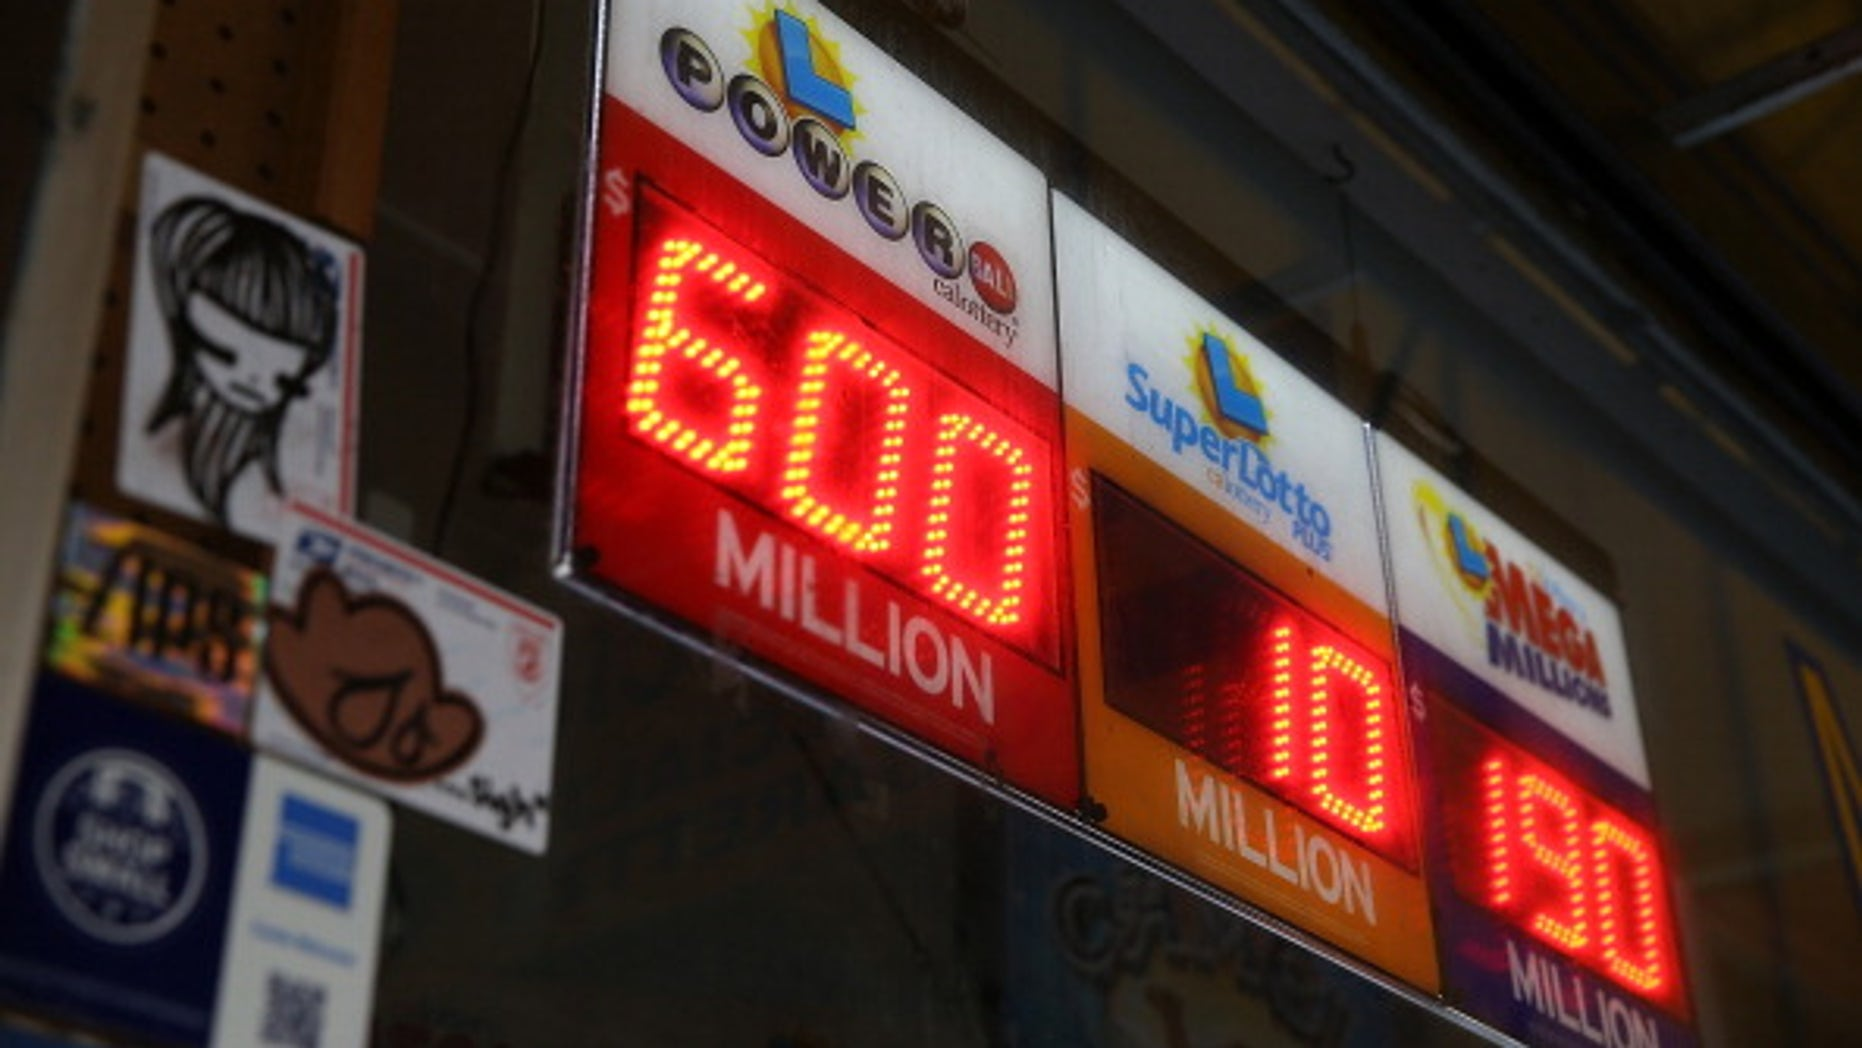 SAN FRANCISCO, CA - MAY 17:  A sign shows the Powerball jackpot at $600 million on May 17, 2013 in San Francisco, California.  People are lining up to purchase $2 Powerball tickets as the multi-state jackpot hits $600 million.  (Photo by Justin Sullivan/Getty Images)